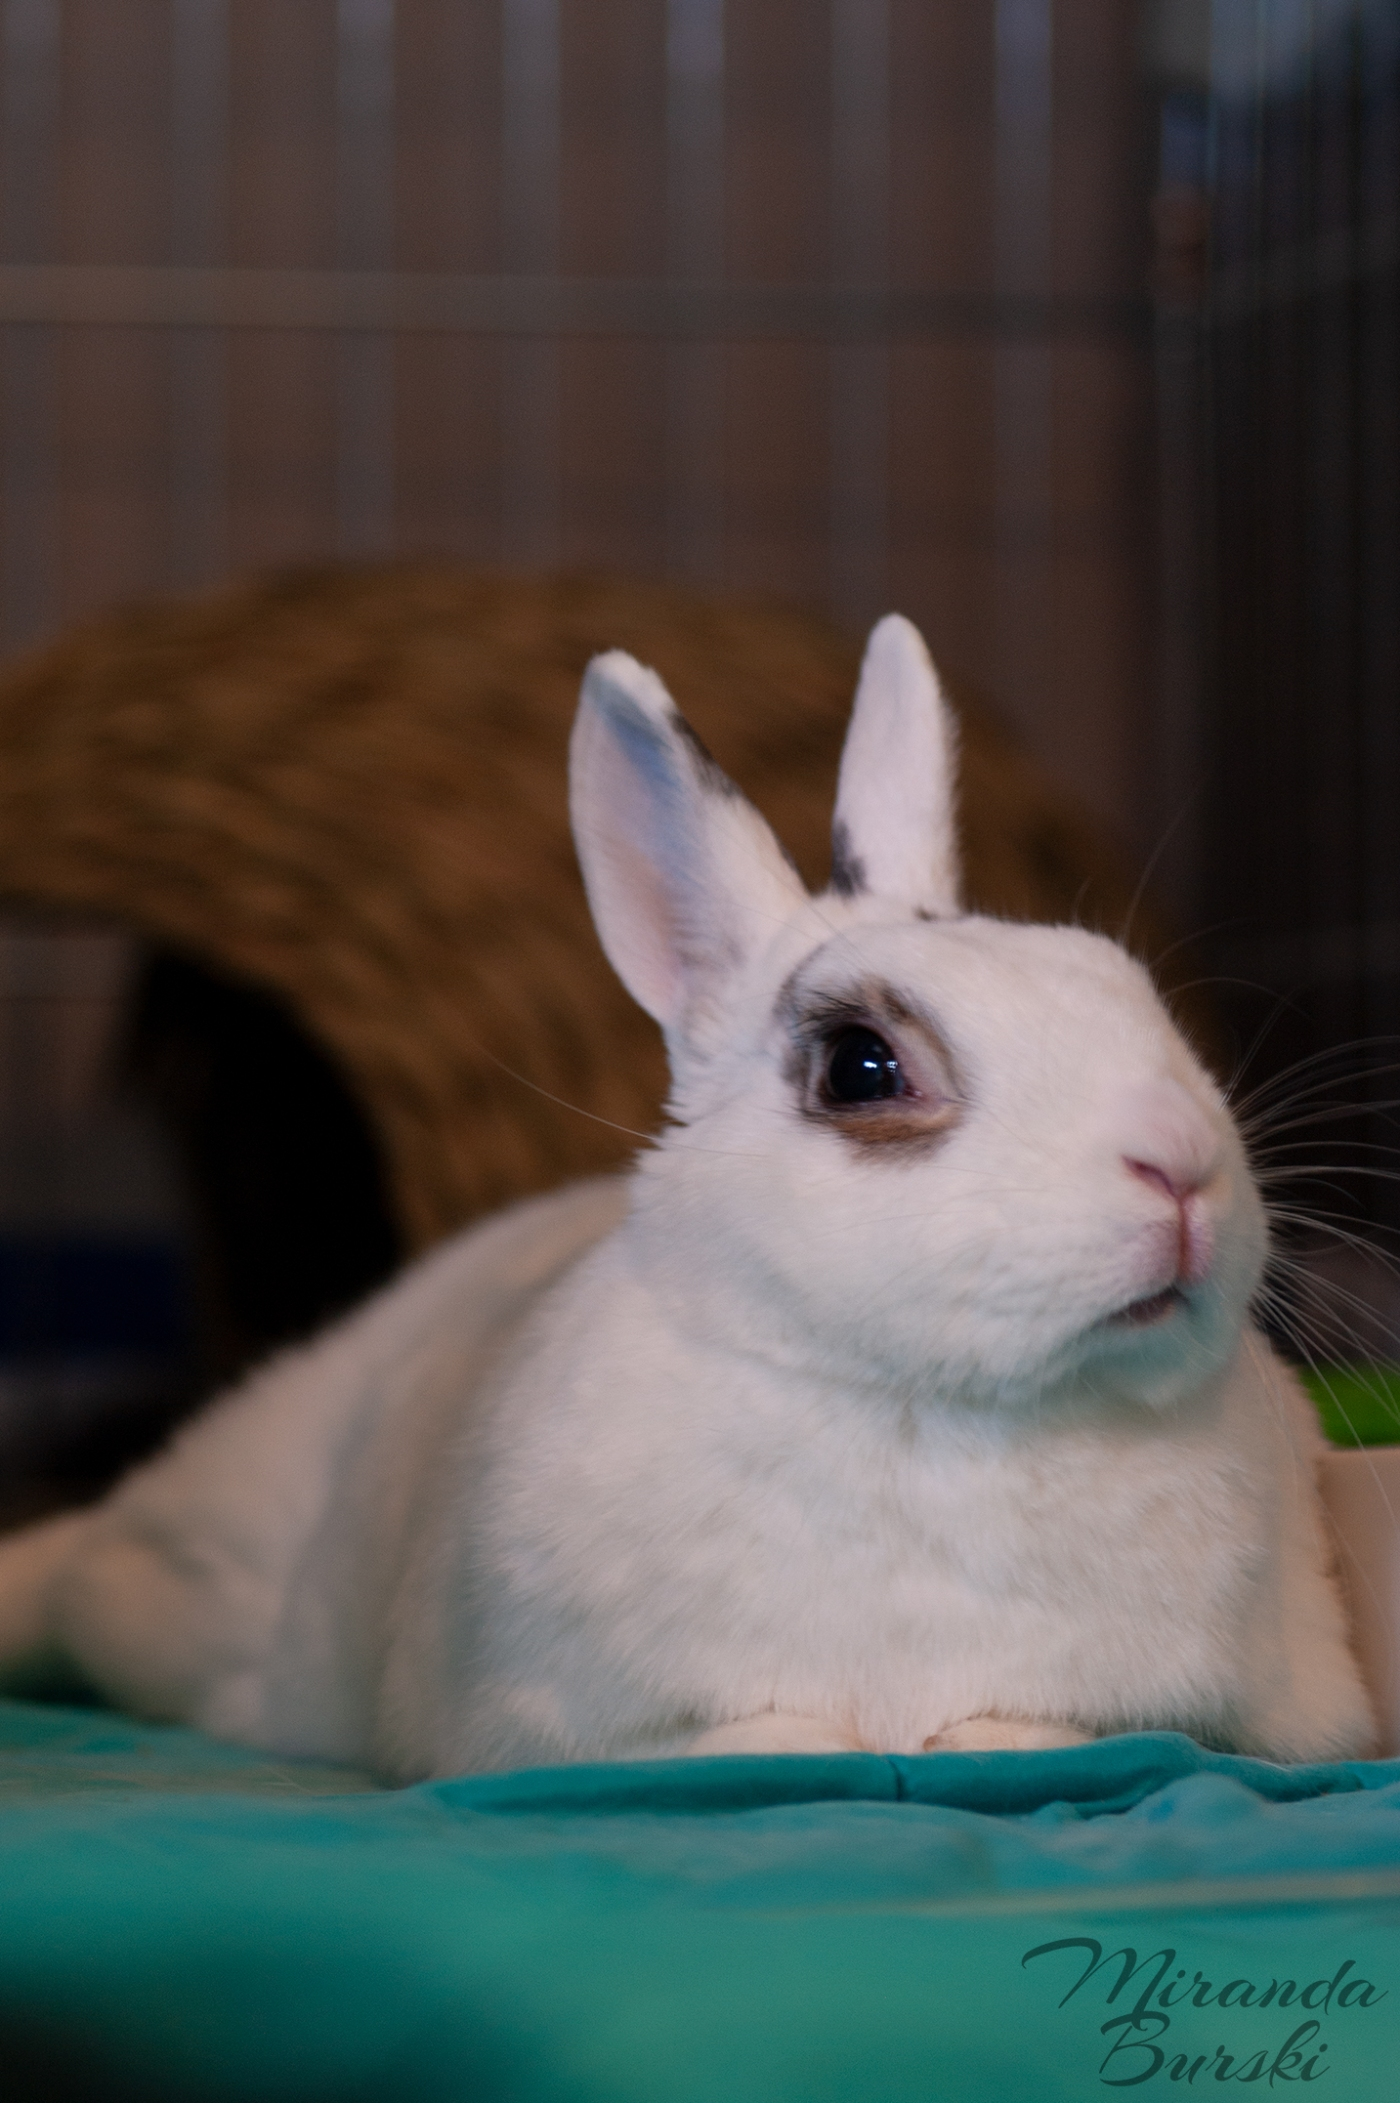 A white and black rabbit laying on a teal blanket.